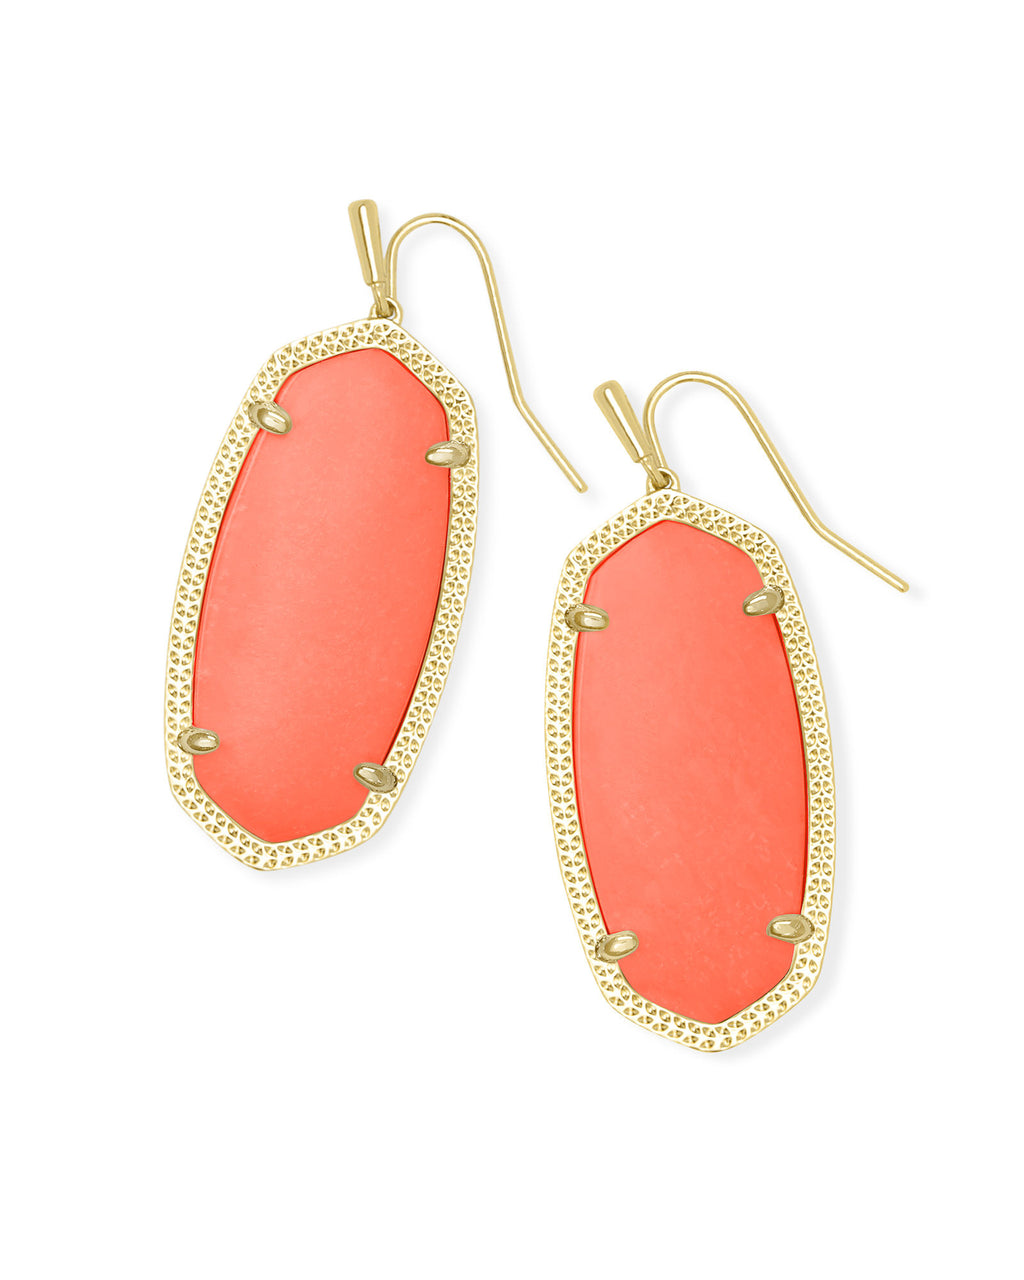 Elle Earring in Gold Bright Coral